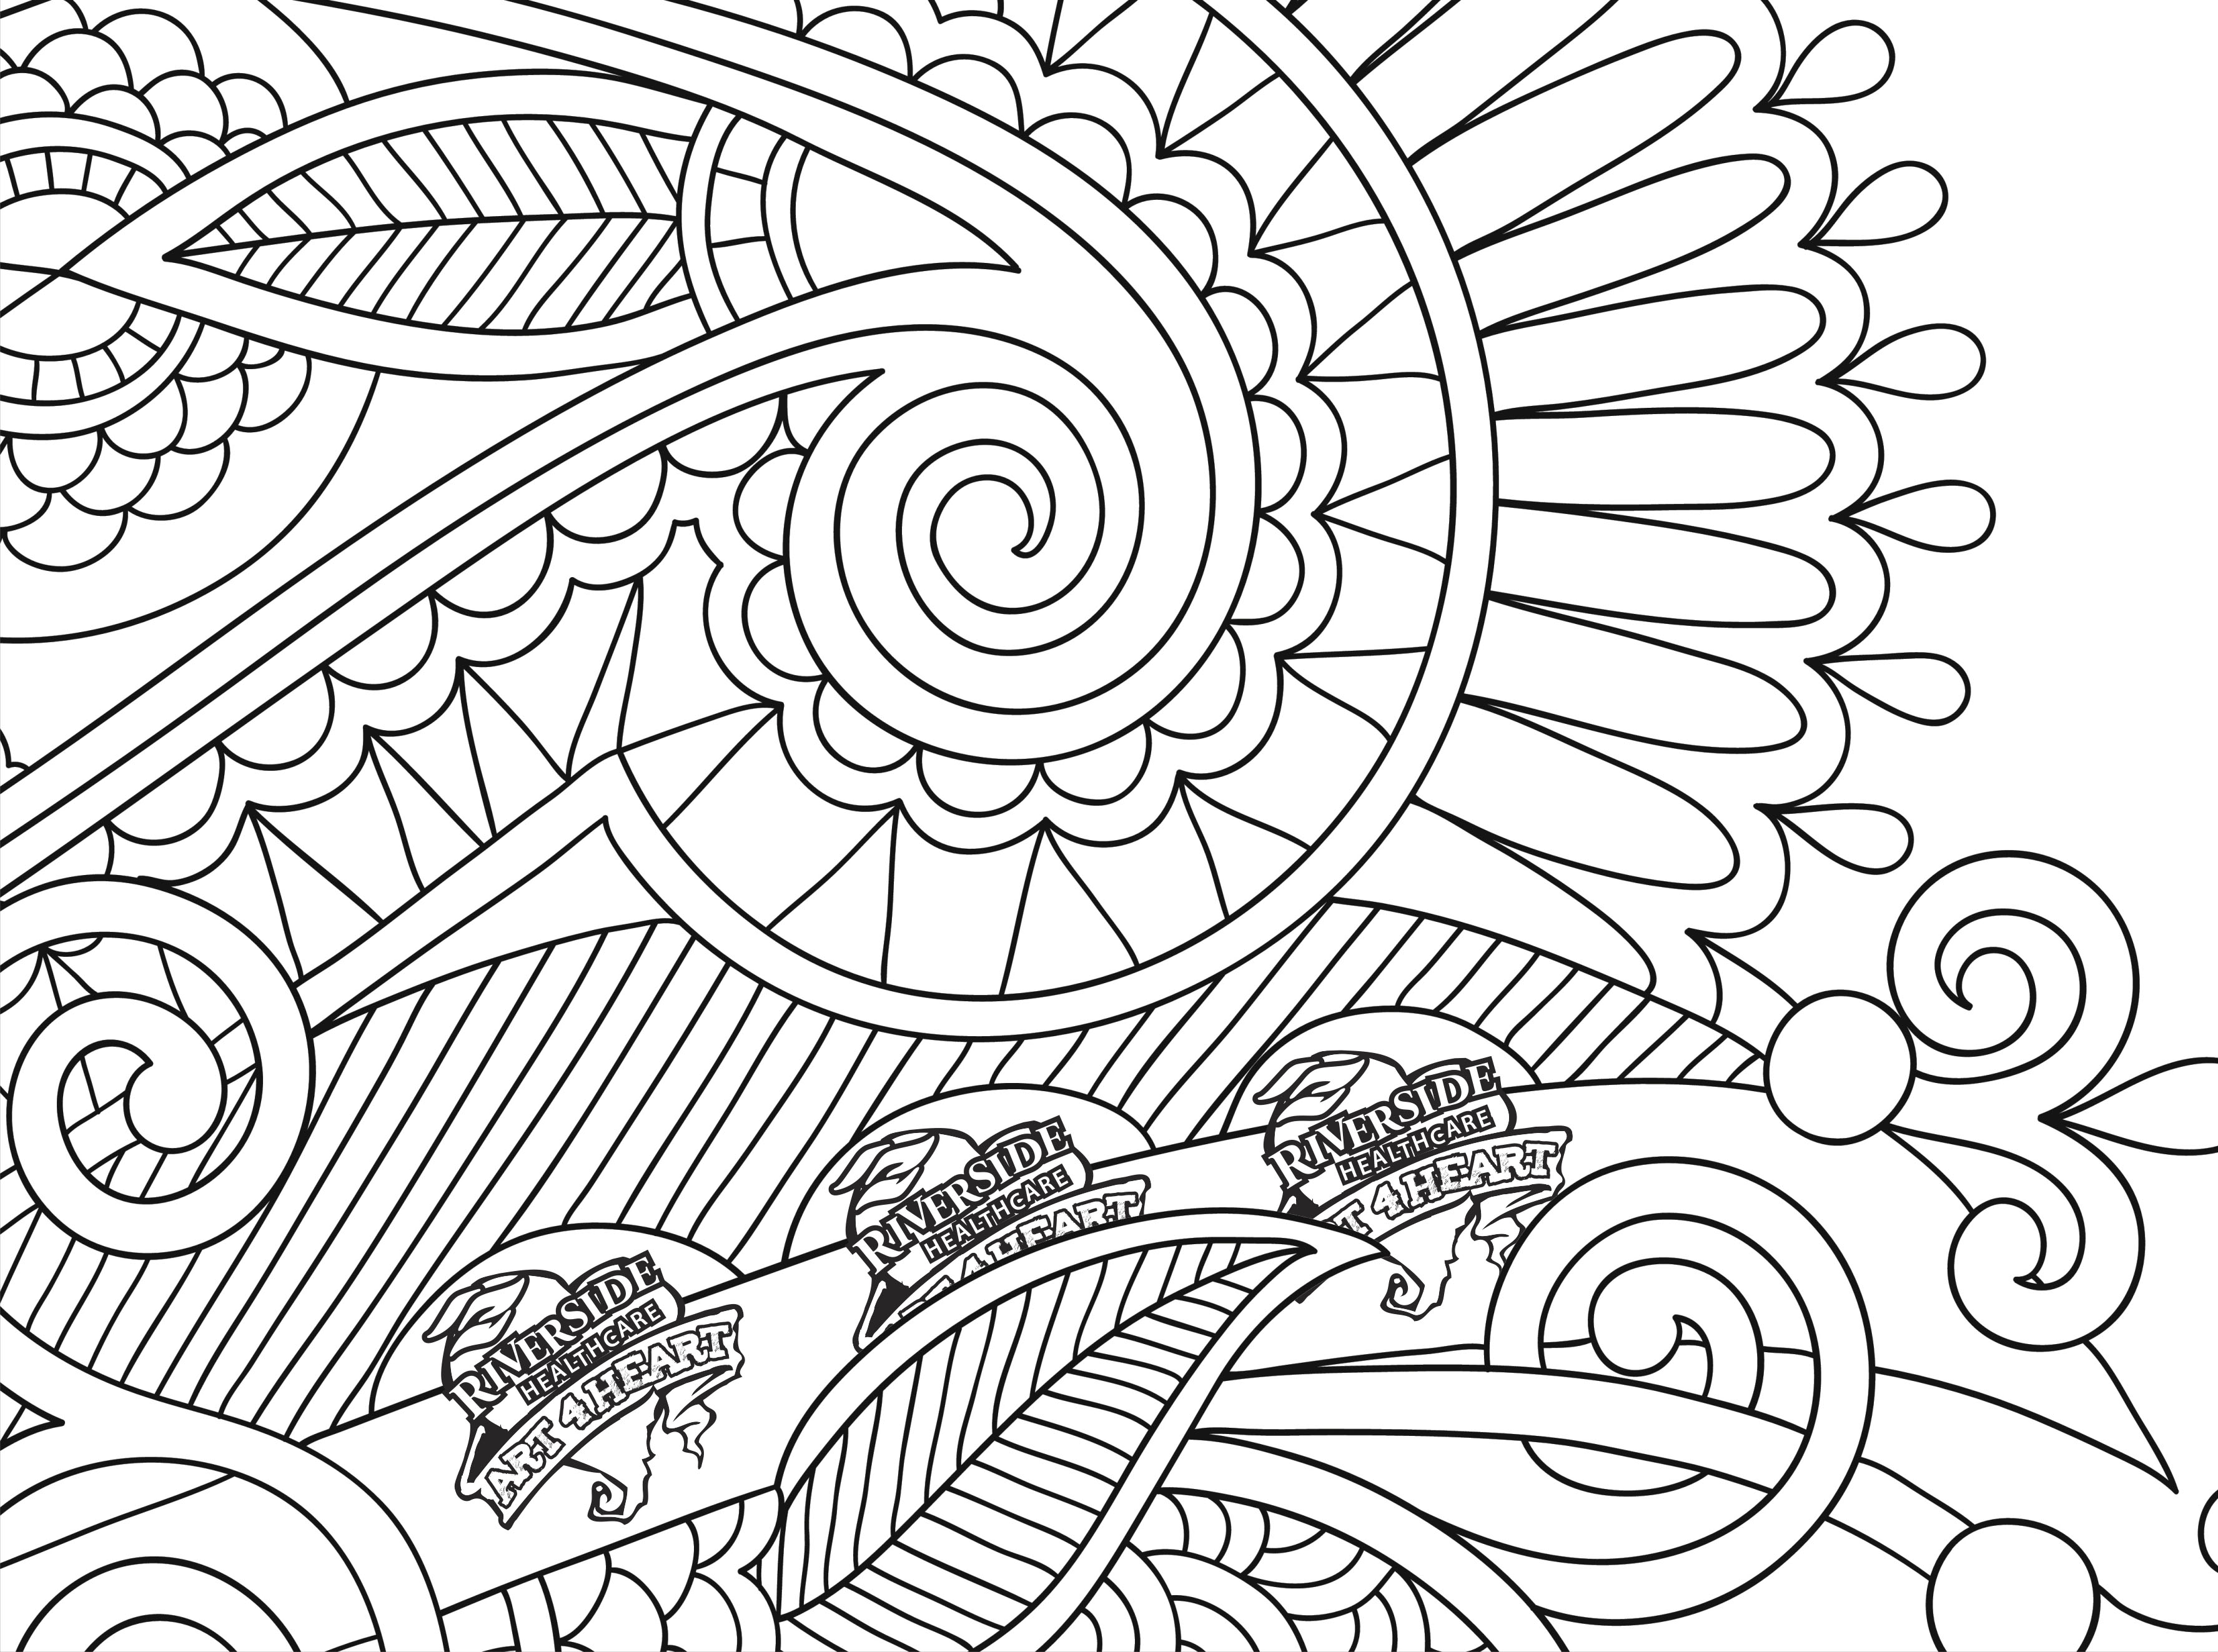 Heals Paralyzed Inside Coloring Page: HealthCurrents » Printable Coloring Pages